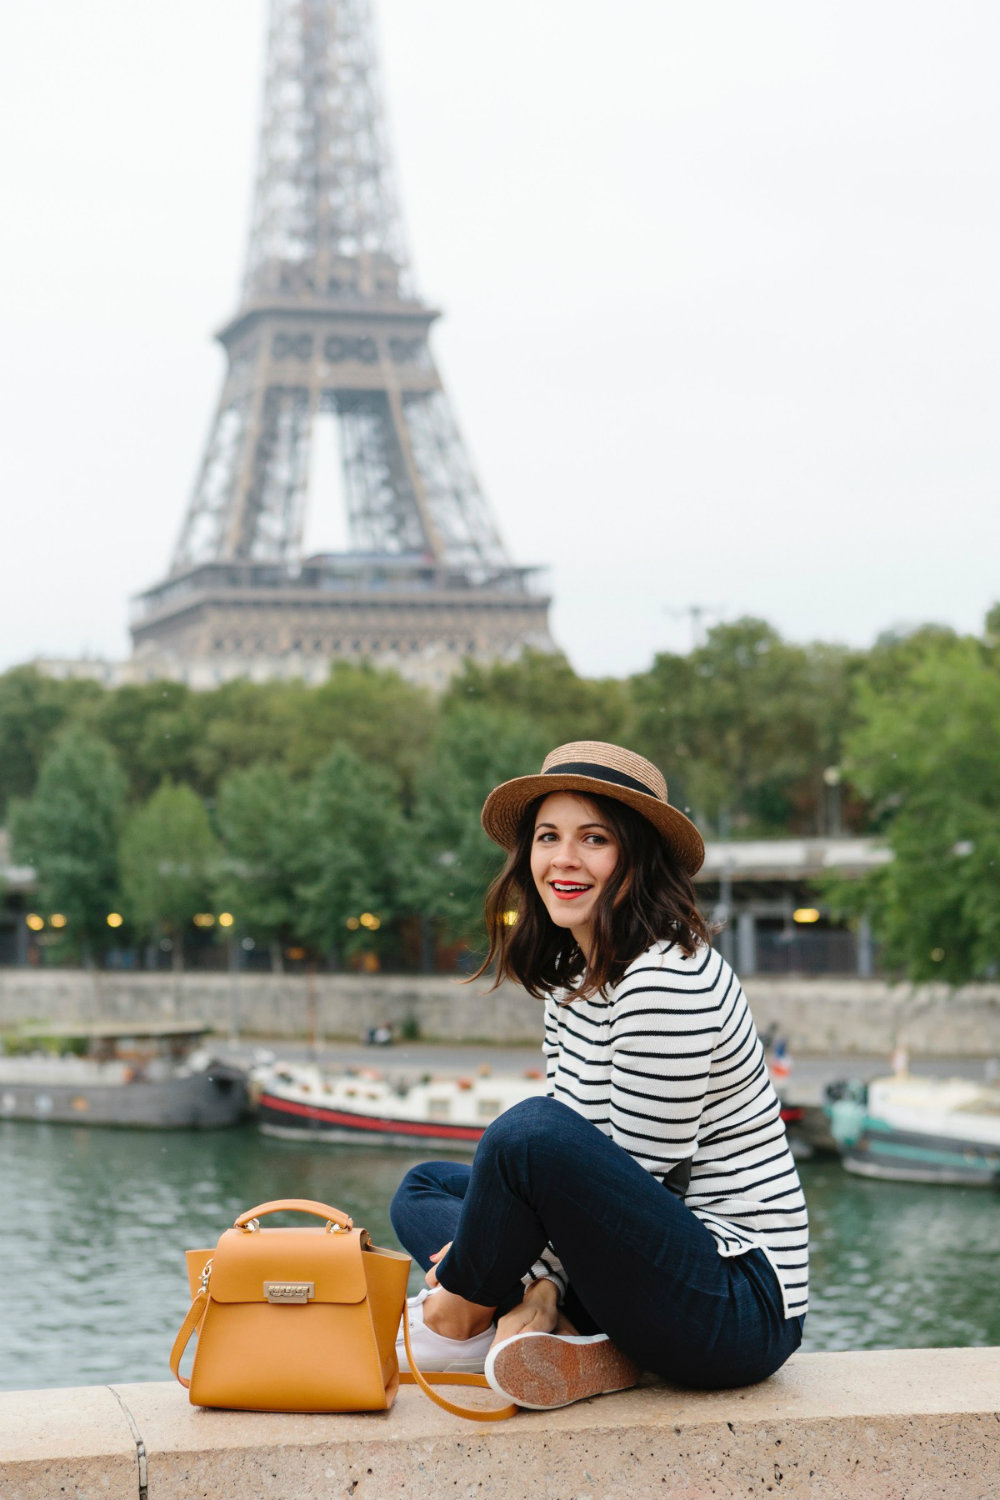 The Most Instagrammable Locations in Paris 02 Instagrammable Locations in Paris The Most Instagrammable Locations in Paris The Most Instagrammable Locations in Paris 02